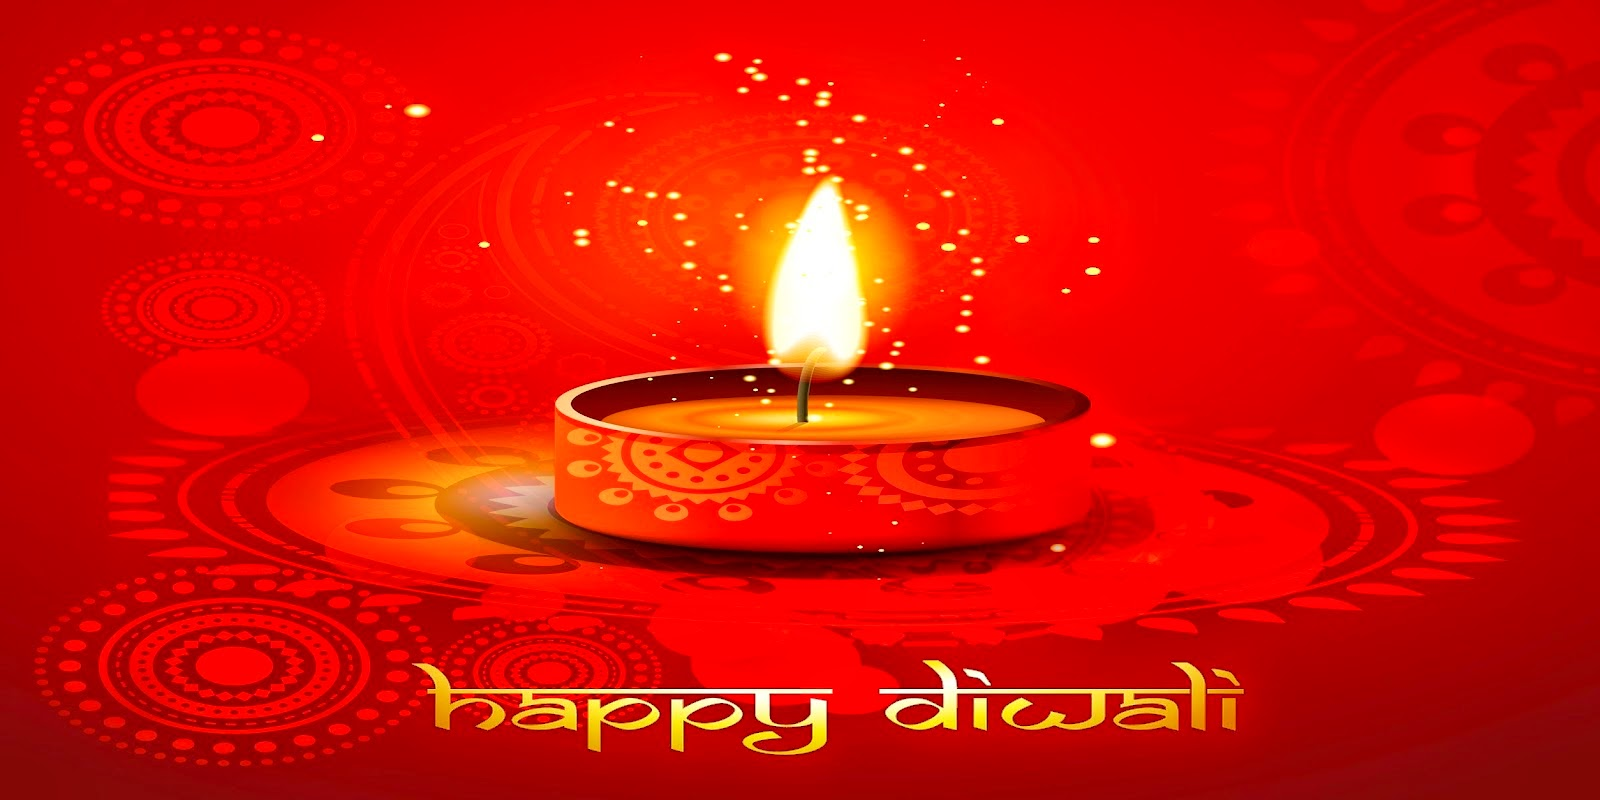 Happy diwali wallpapers diwali 2014 desktop images and - Hd wallpaper happy diwali ...